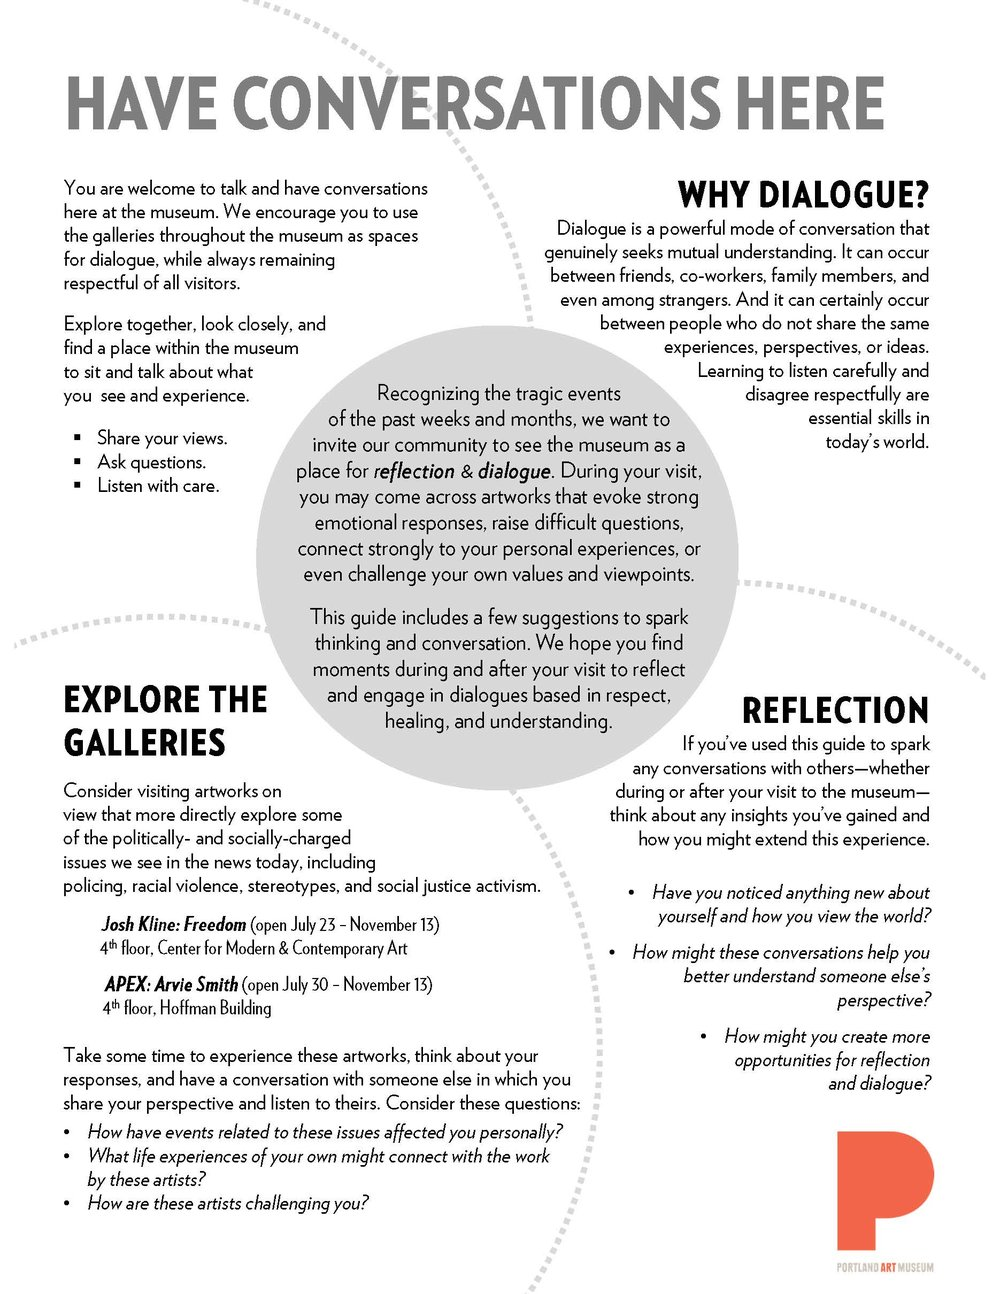 Portland Art Museum's  Have Conversations Here  guide, created by Mike Murawski.  Full (cut-n-paste/screen reader friendly) text available at:  https://artmuseumteaching.com/2016/08/31/have-conversations-here/